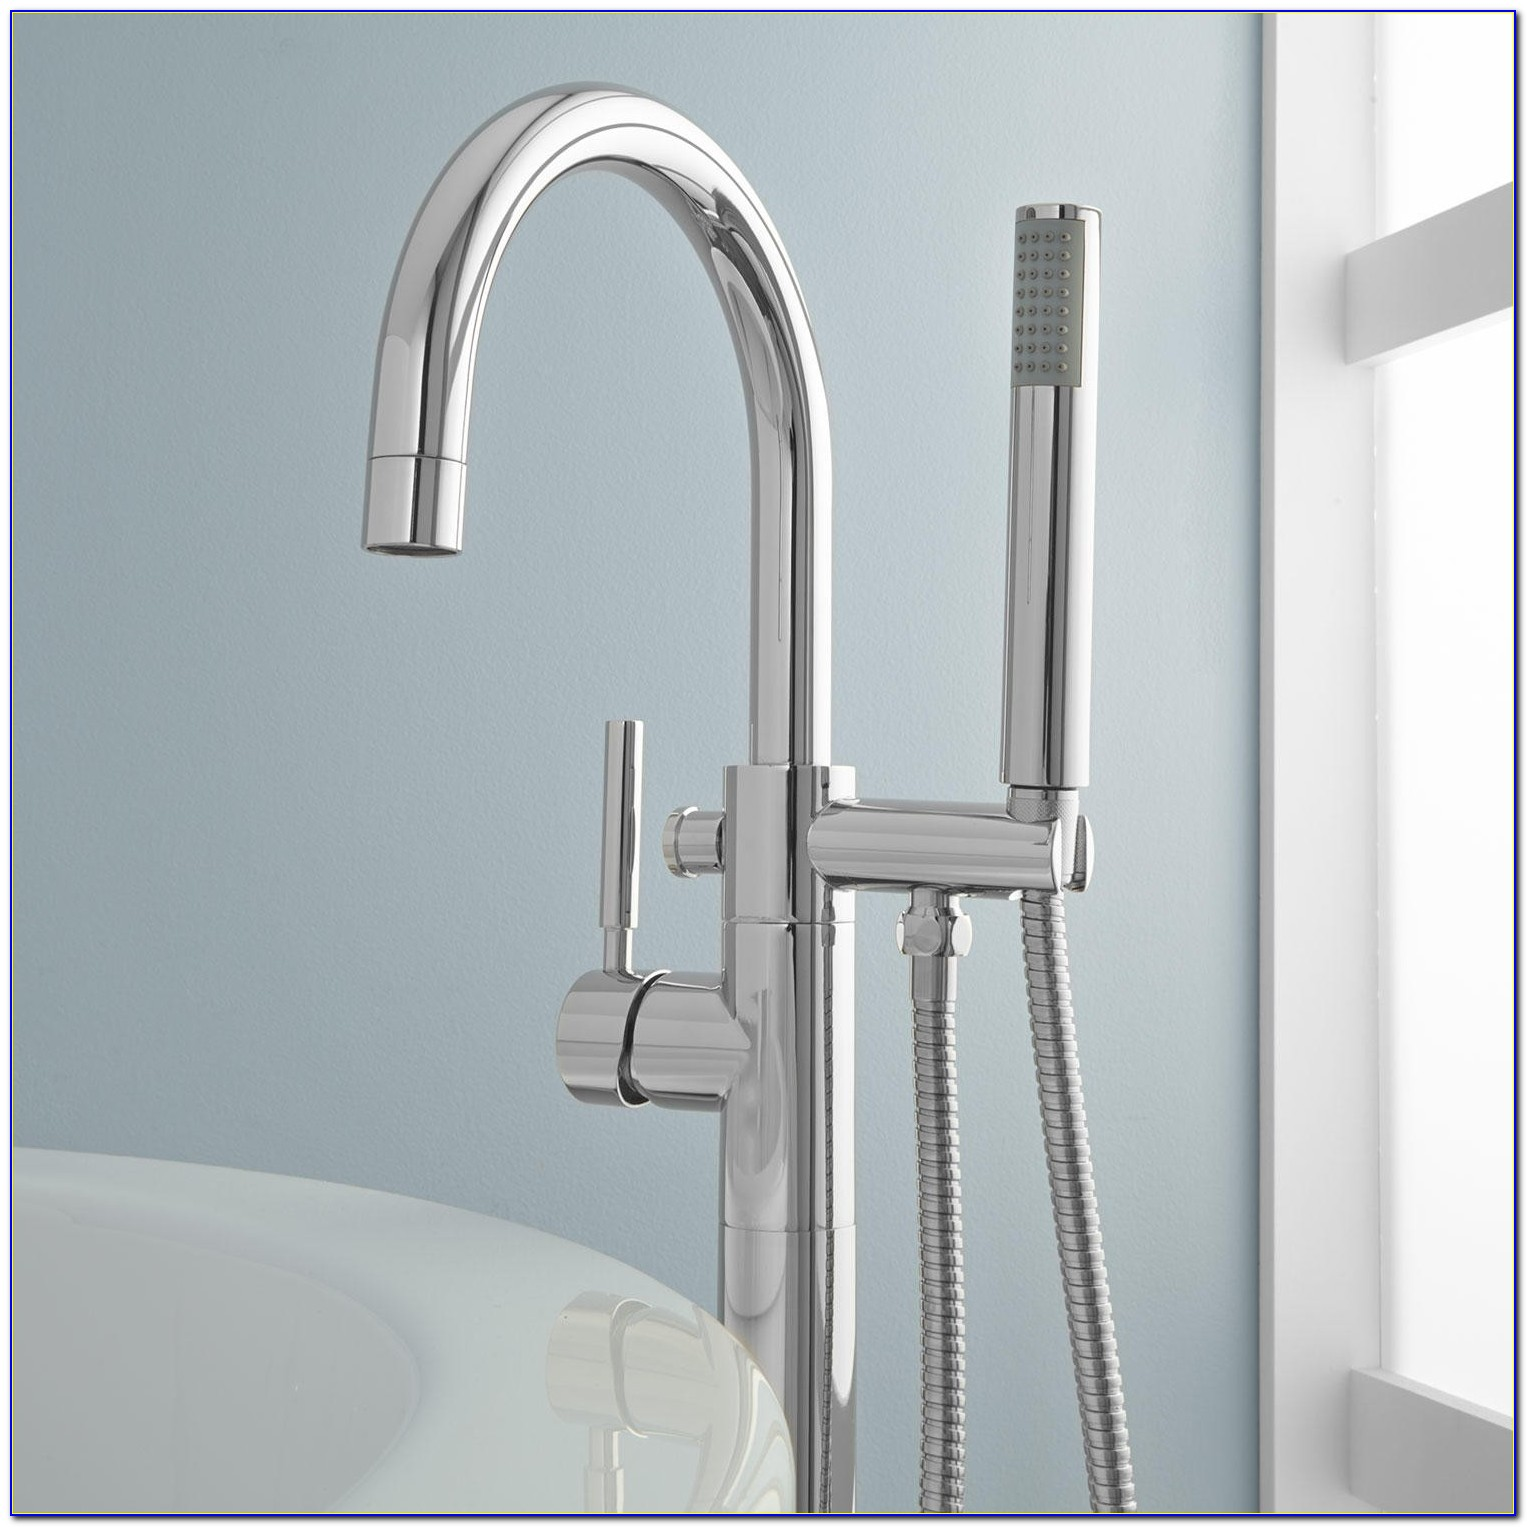 Shower Hose Attachment For Sink Best Sink Decoration Throughout Proportions 1500 X 1500